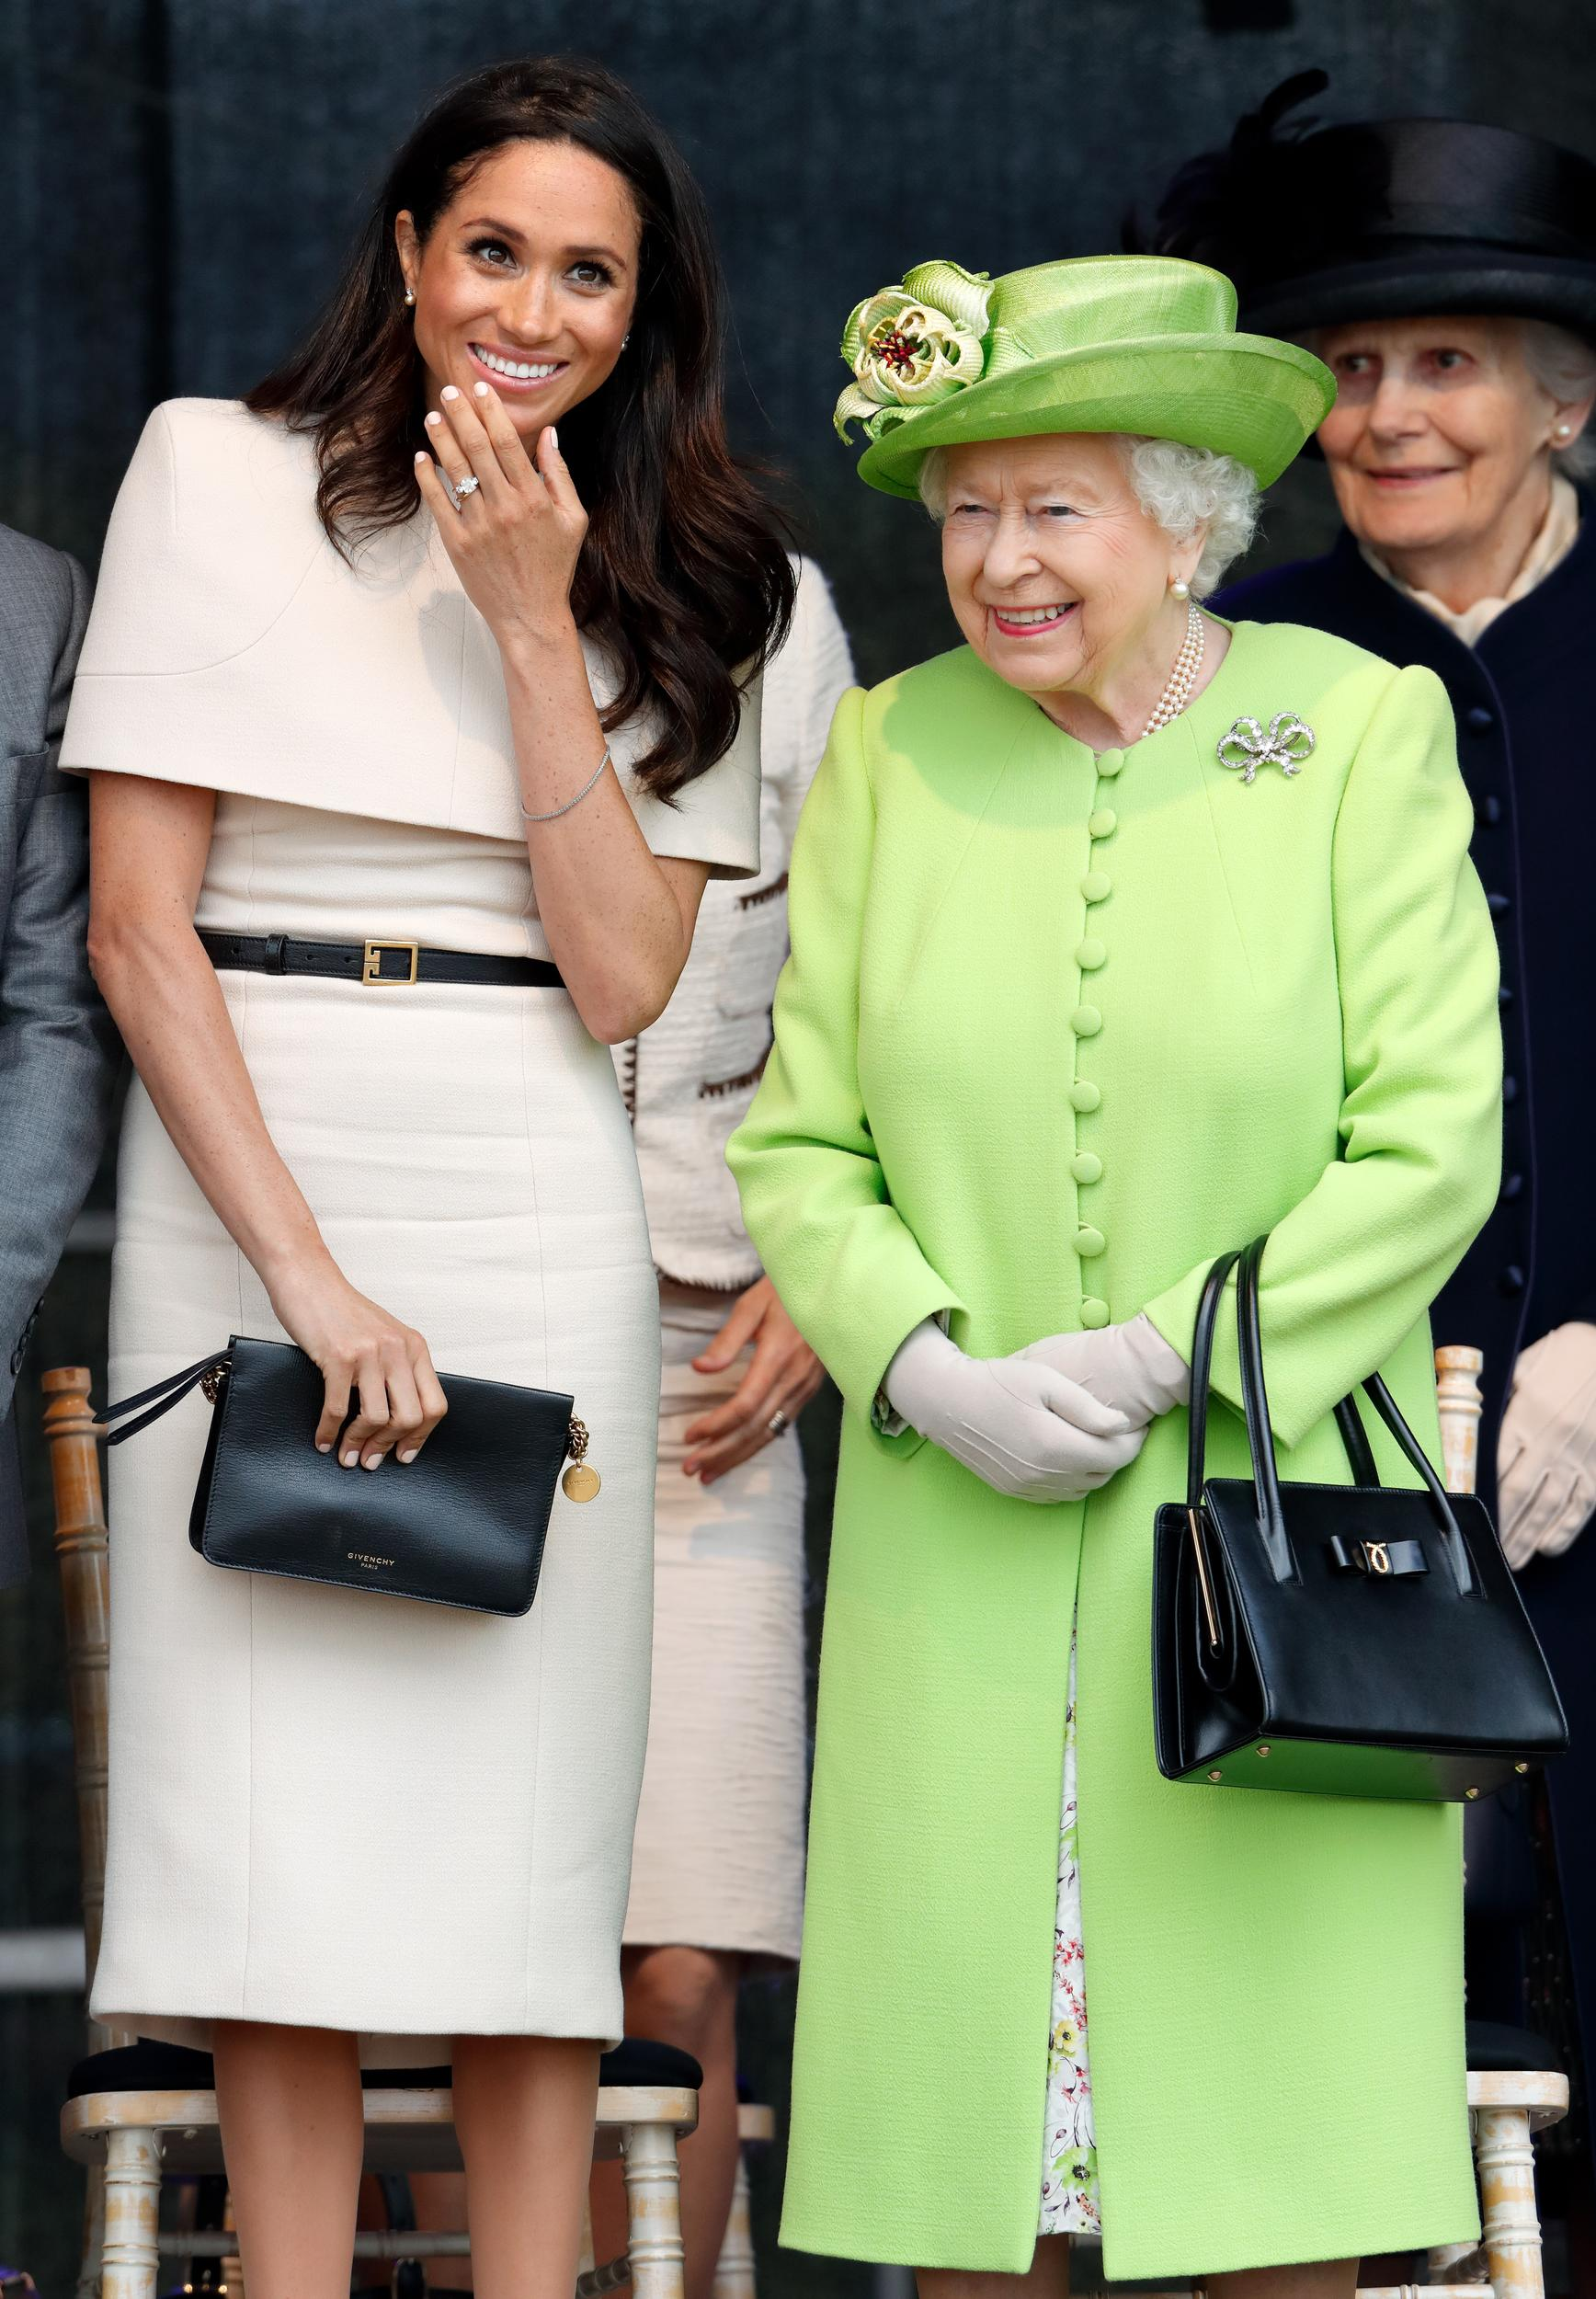 WIDNES, UNITED KINGDOM - JUNE 14: (EMBARGOED FOR PUBLICATION IN UK NEWSPAPERS UNTIL 24 HOURS AFTER CREATE DATE AND TIME) Meghan, Duchess of Sussex and Queen Elizabeth II attend a ceremony to open the new Mersey Gateway Bridge on June 14, 2018 in Widnes, England. Meghan Markle married Prince Harry last month to become The Duchess of Sussex and this is her first engagement with the Queen. During the visit the pair will open a road bridge in Widnes and visit The Storyhouse and Town Hall in Chester. (Photo by Max Mumby/Indigo/Getty Images)